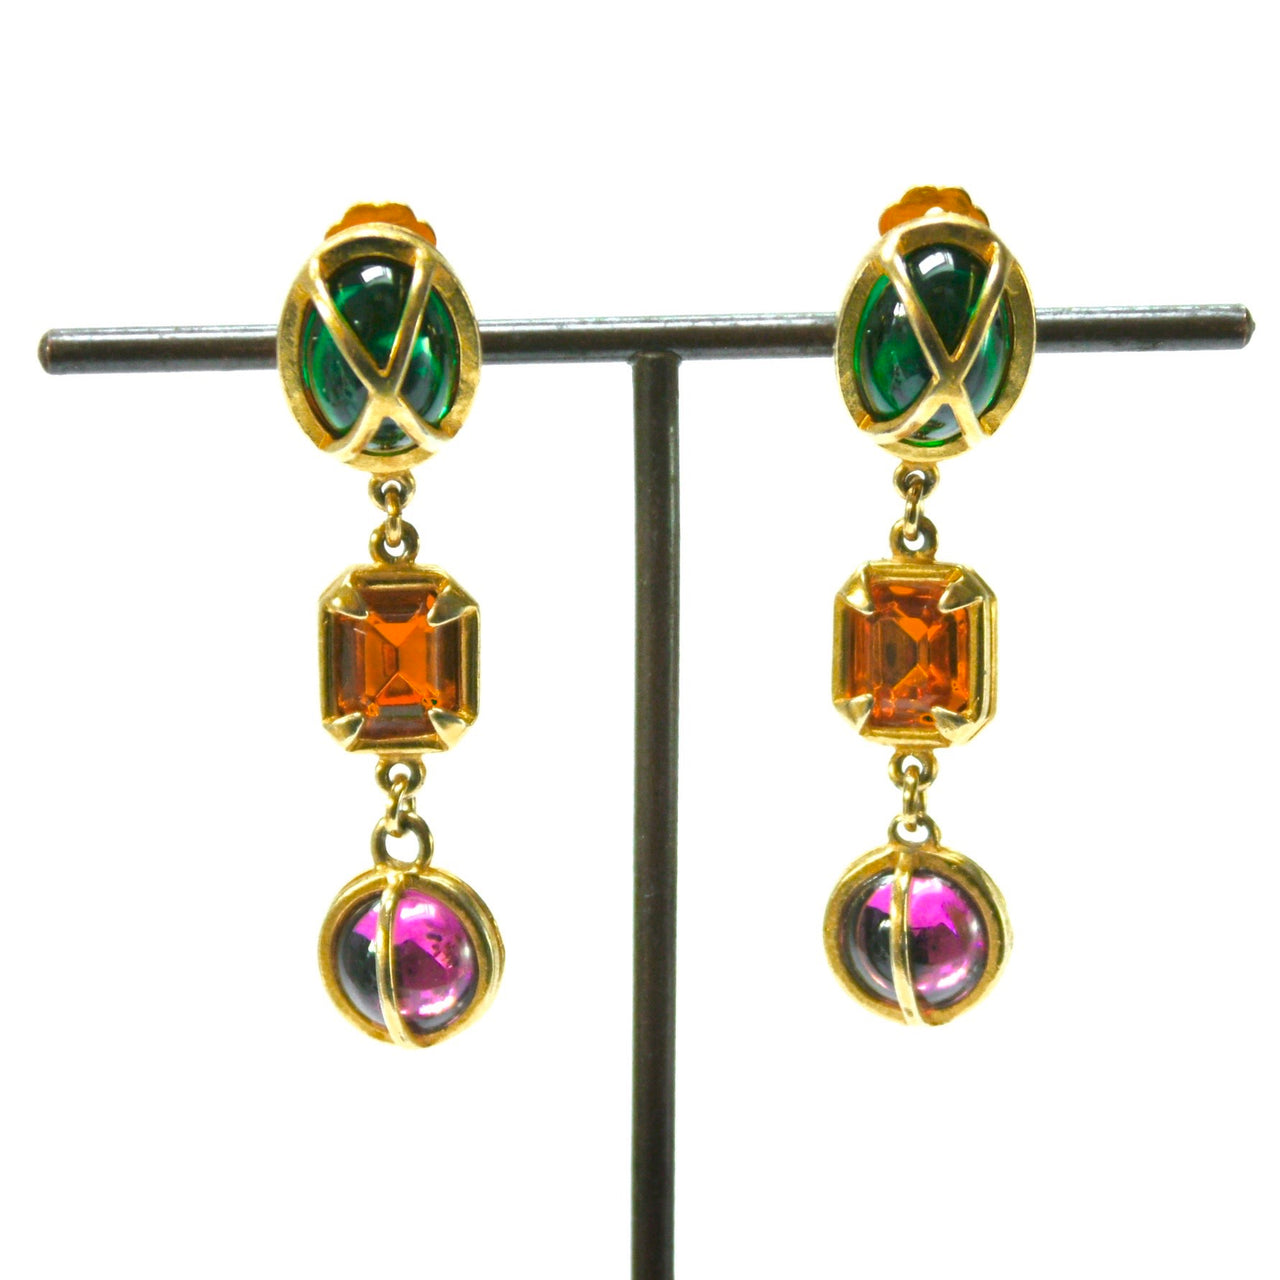 1980s Vintage Jewel Clip On Drop Earrings